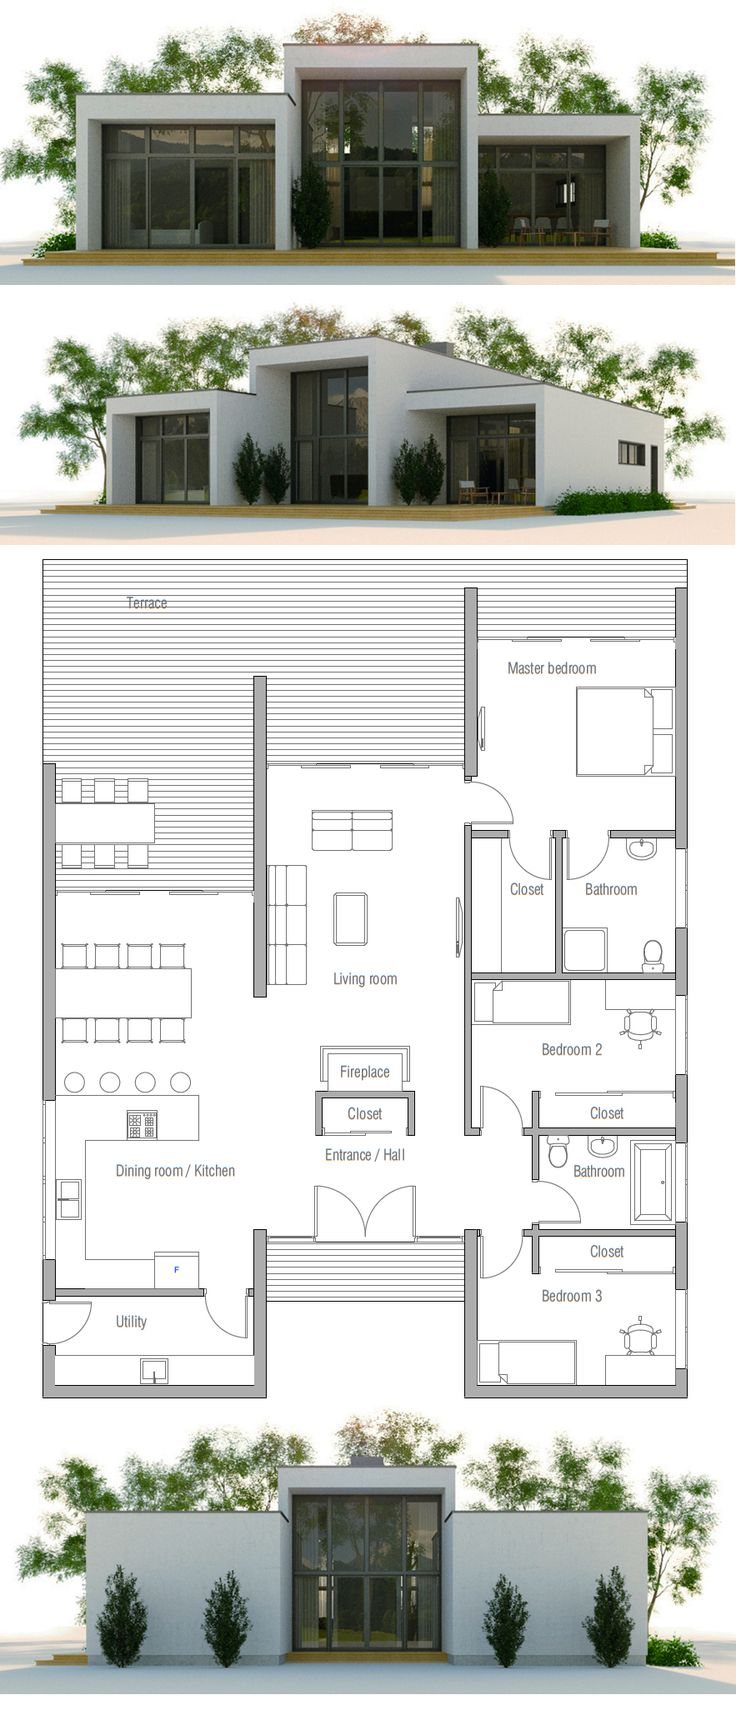 Minimalist House Design Plans best 25+ minimalist house ideas on pinterest | minimalist living